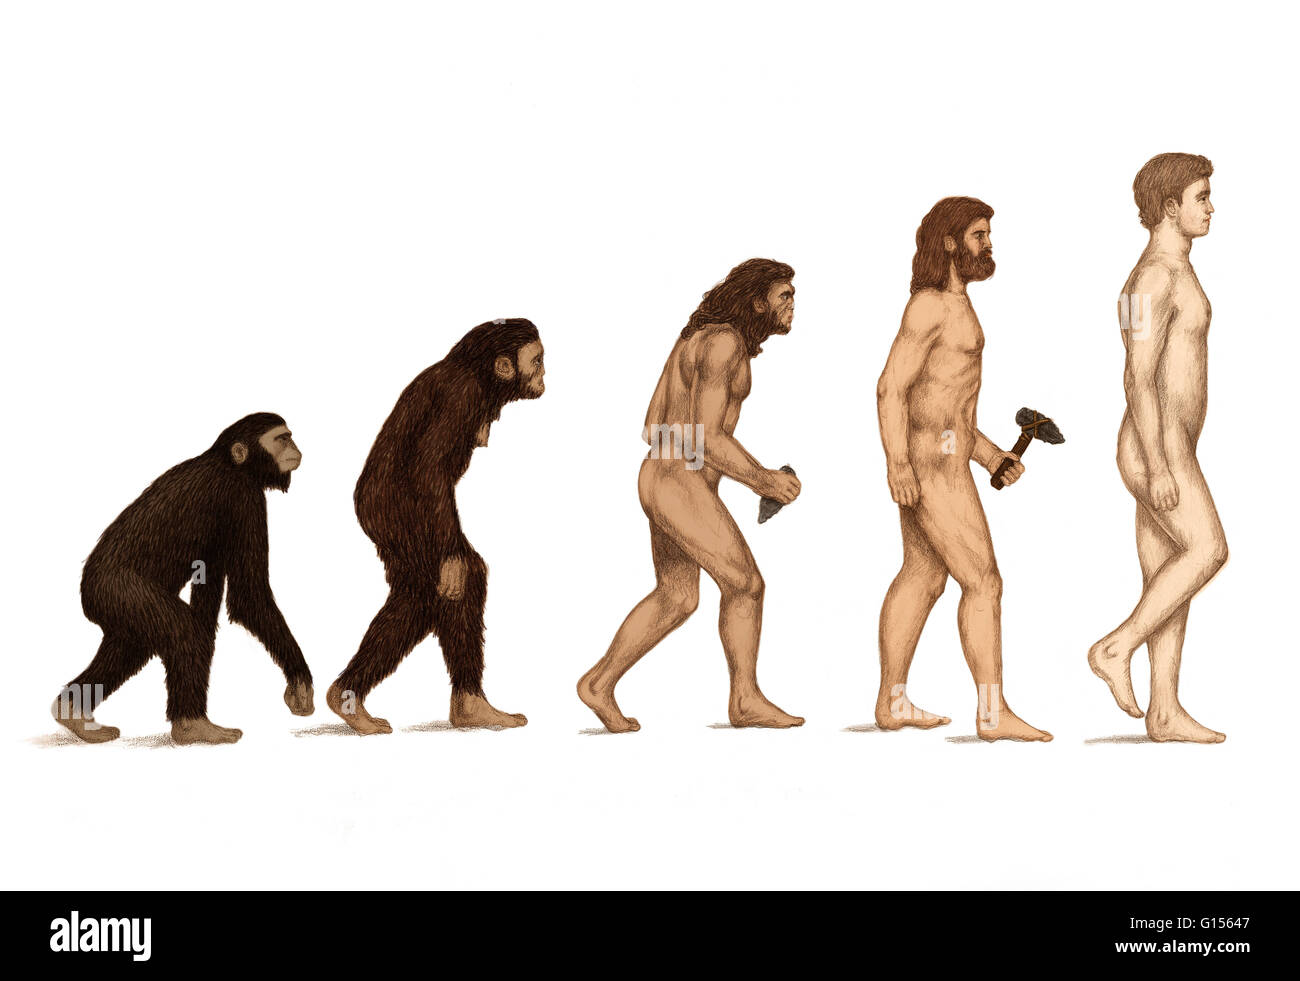 hominids human and continuously progressive development A continuous improvement plan is a set of activities designed to bring gradual, ongoing improvement to products, services, or processes through constant review, measurement, and action.